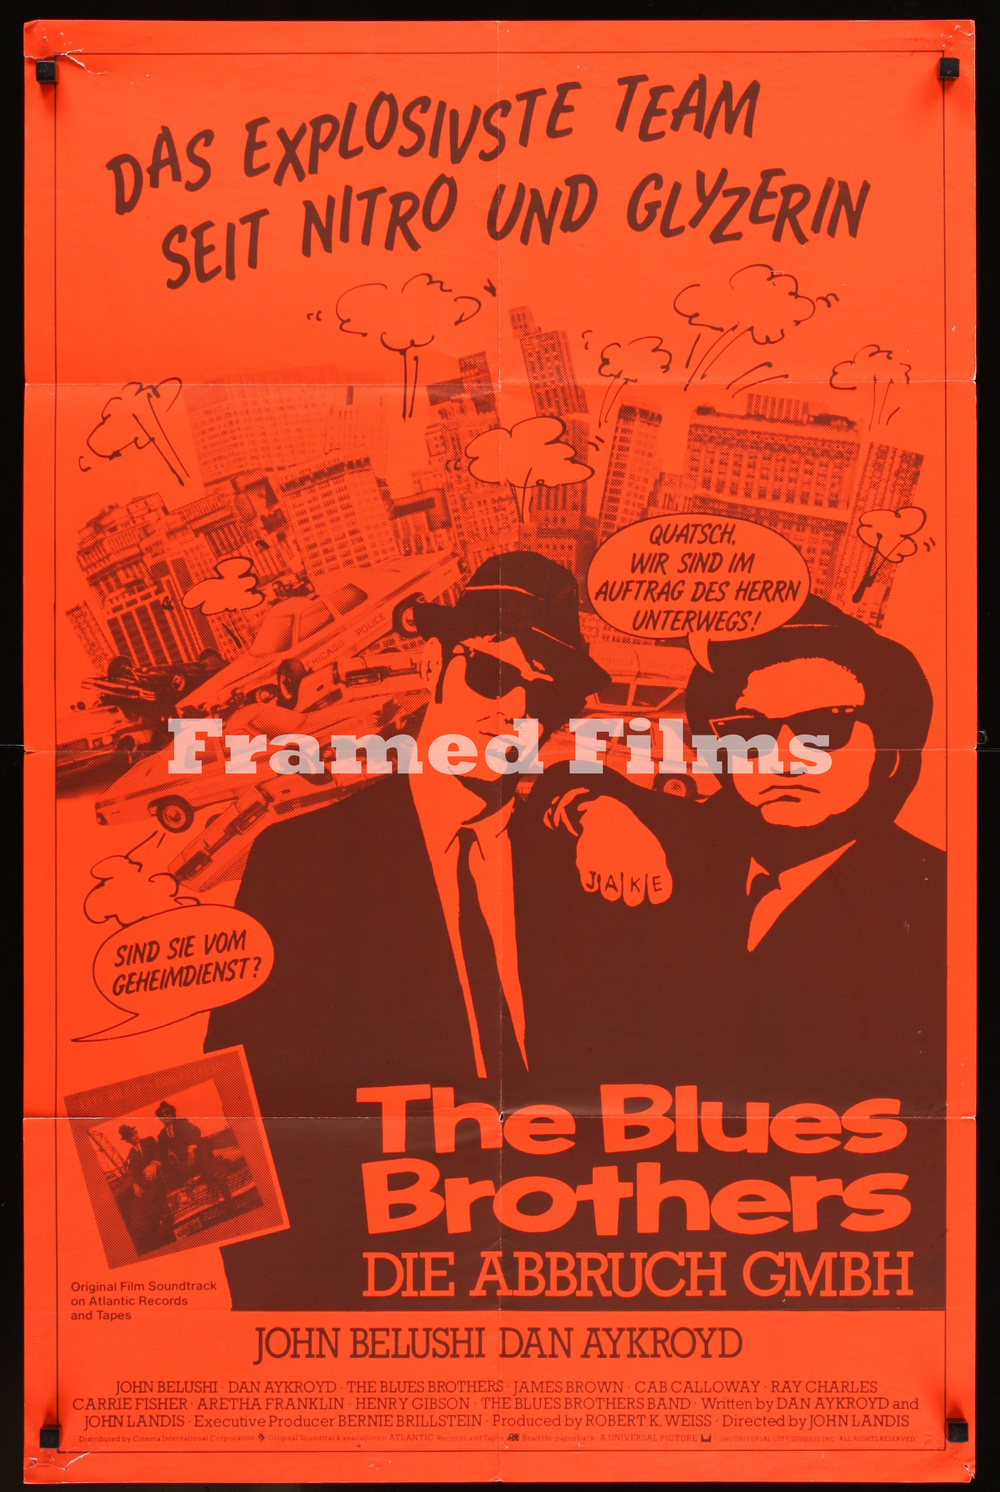 german_a1_blues_brothers_NZ03869_L.jpg